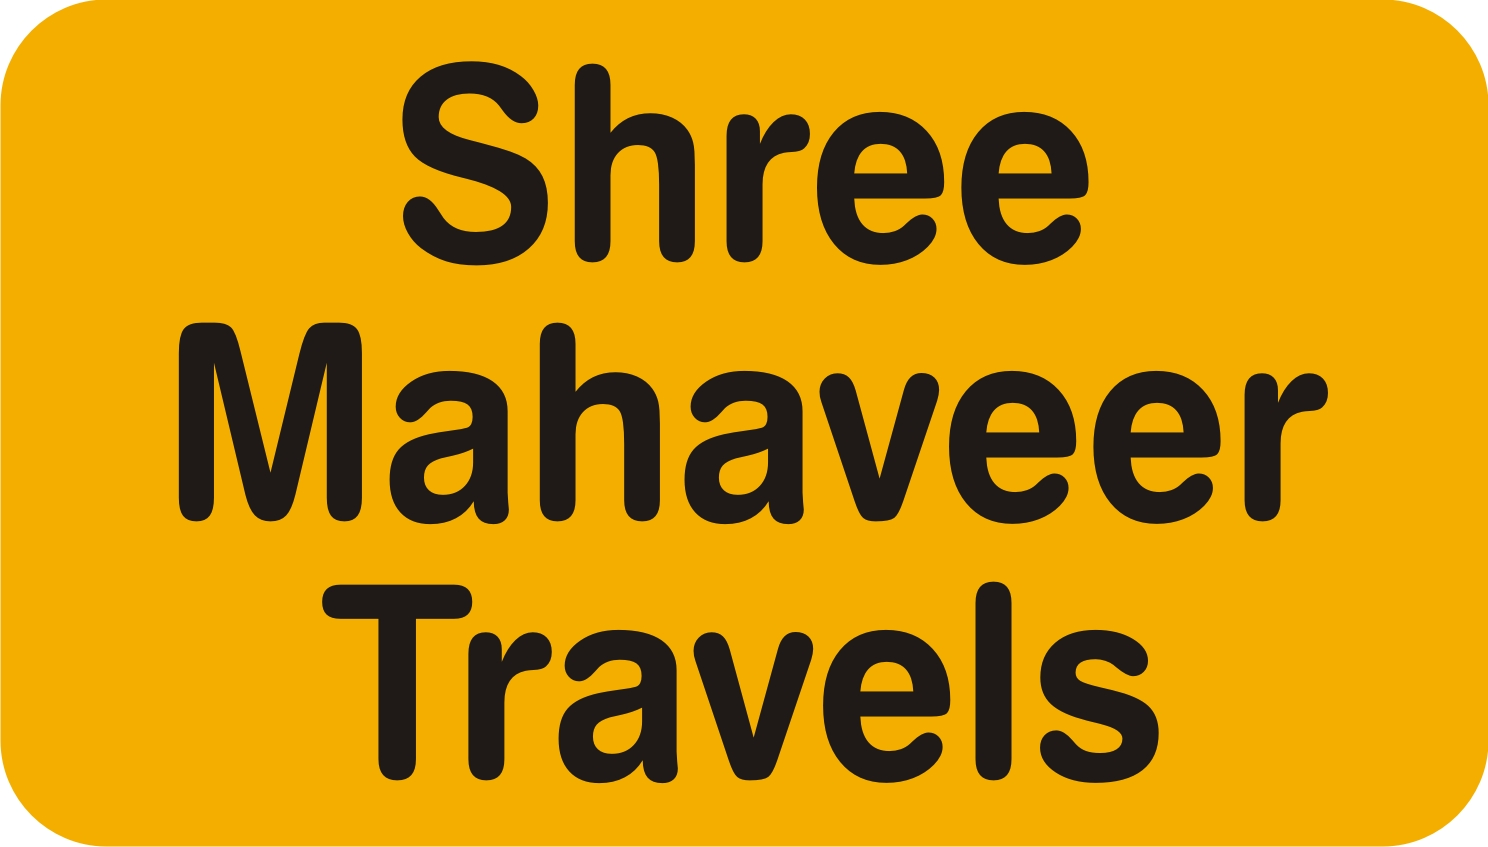 Shree Mahaveer Travels